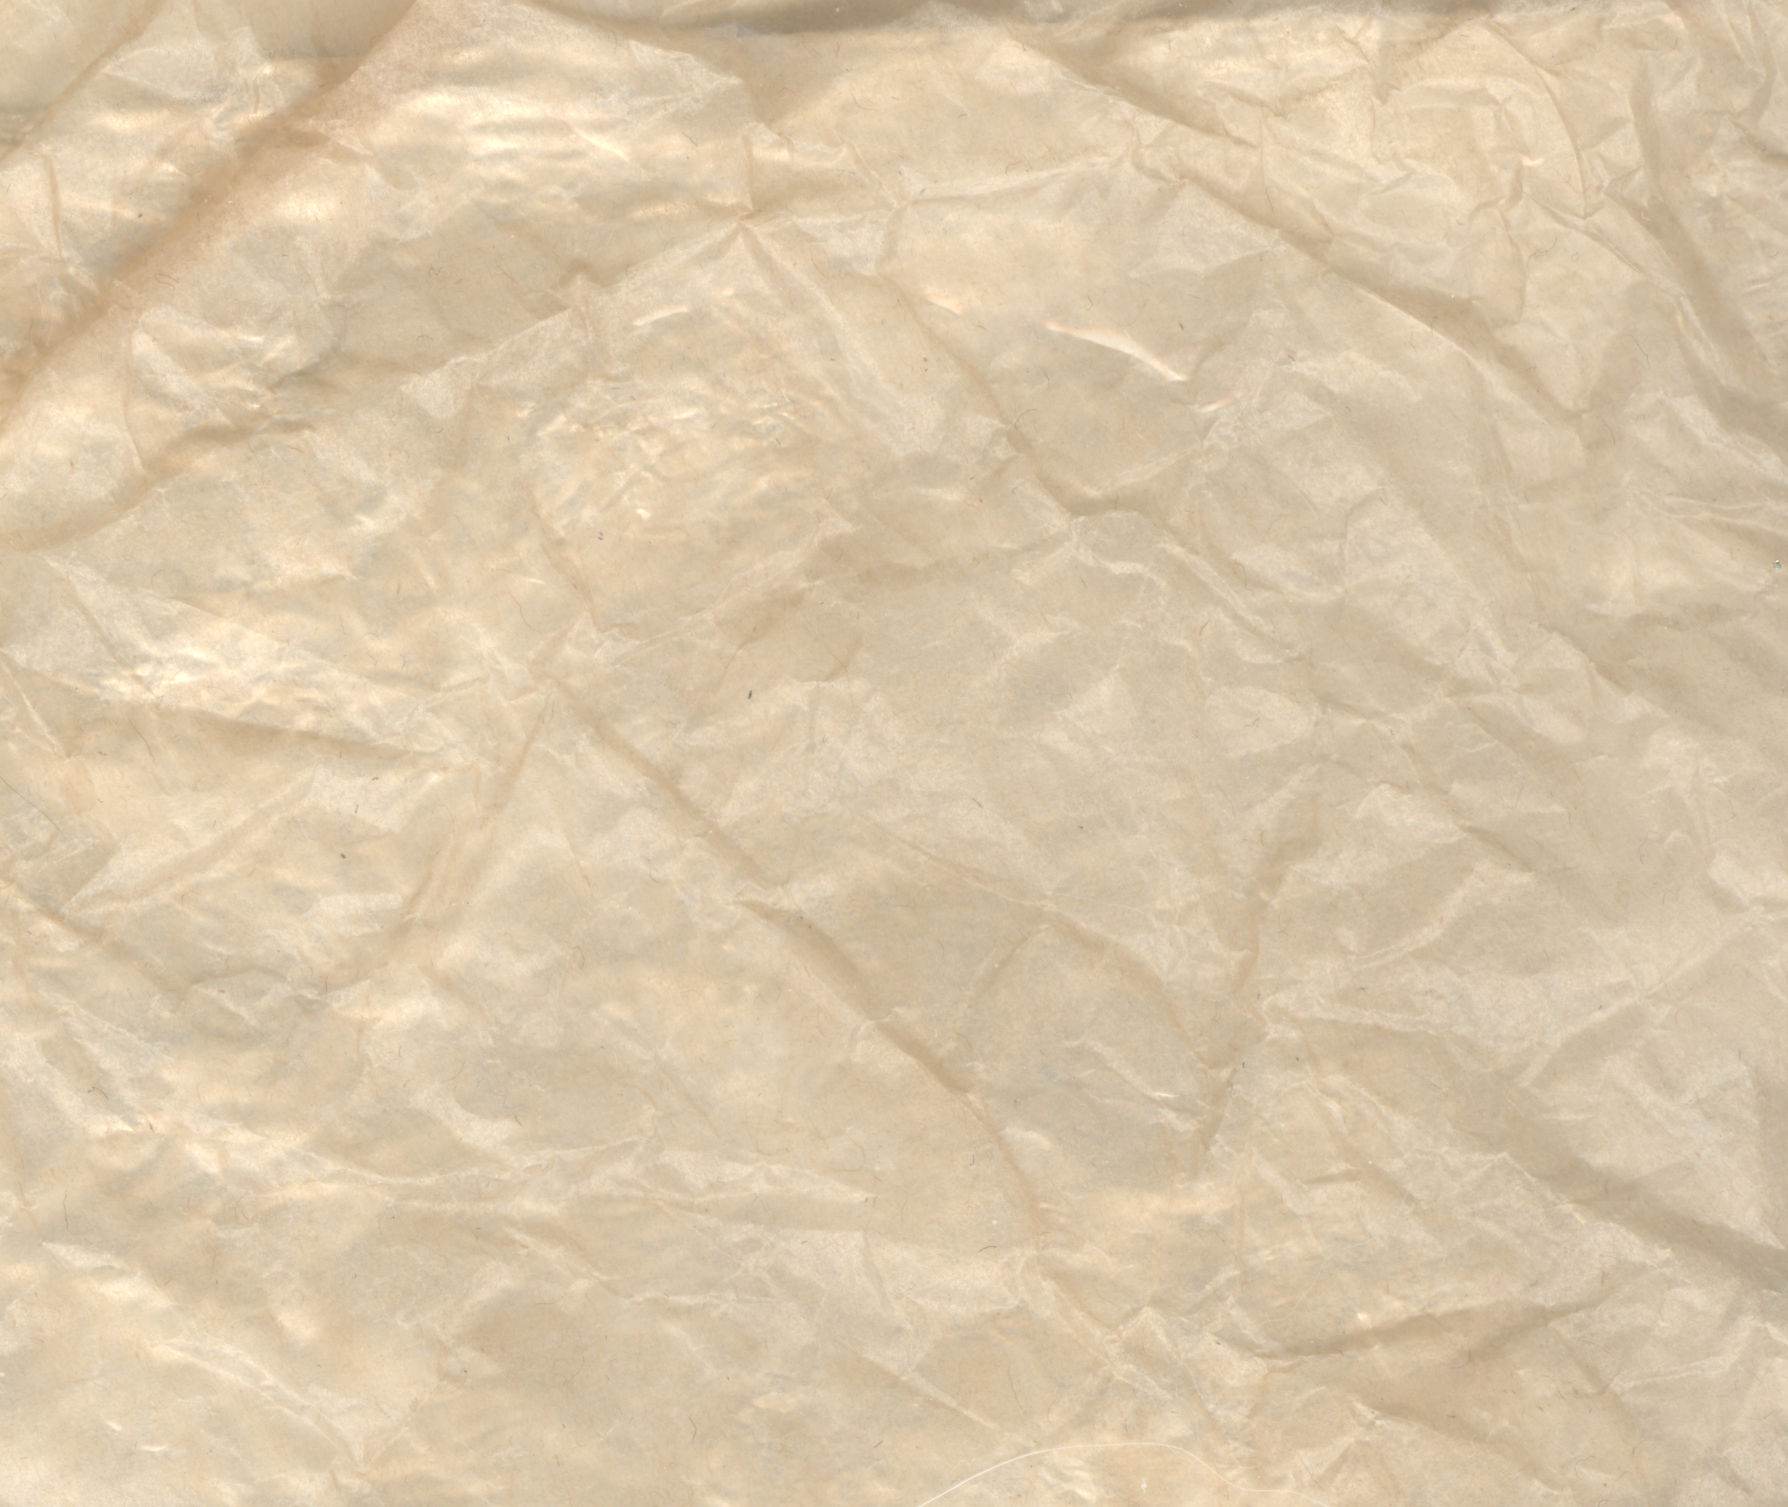 paper texture folds wrinkles white kinkyfriend royalty-free